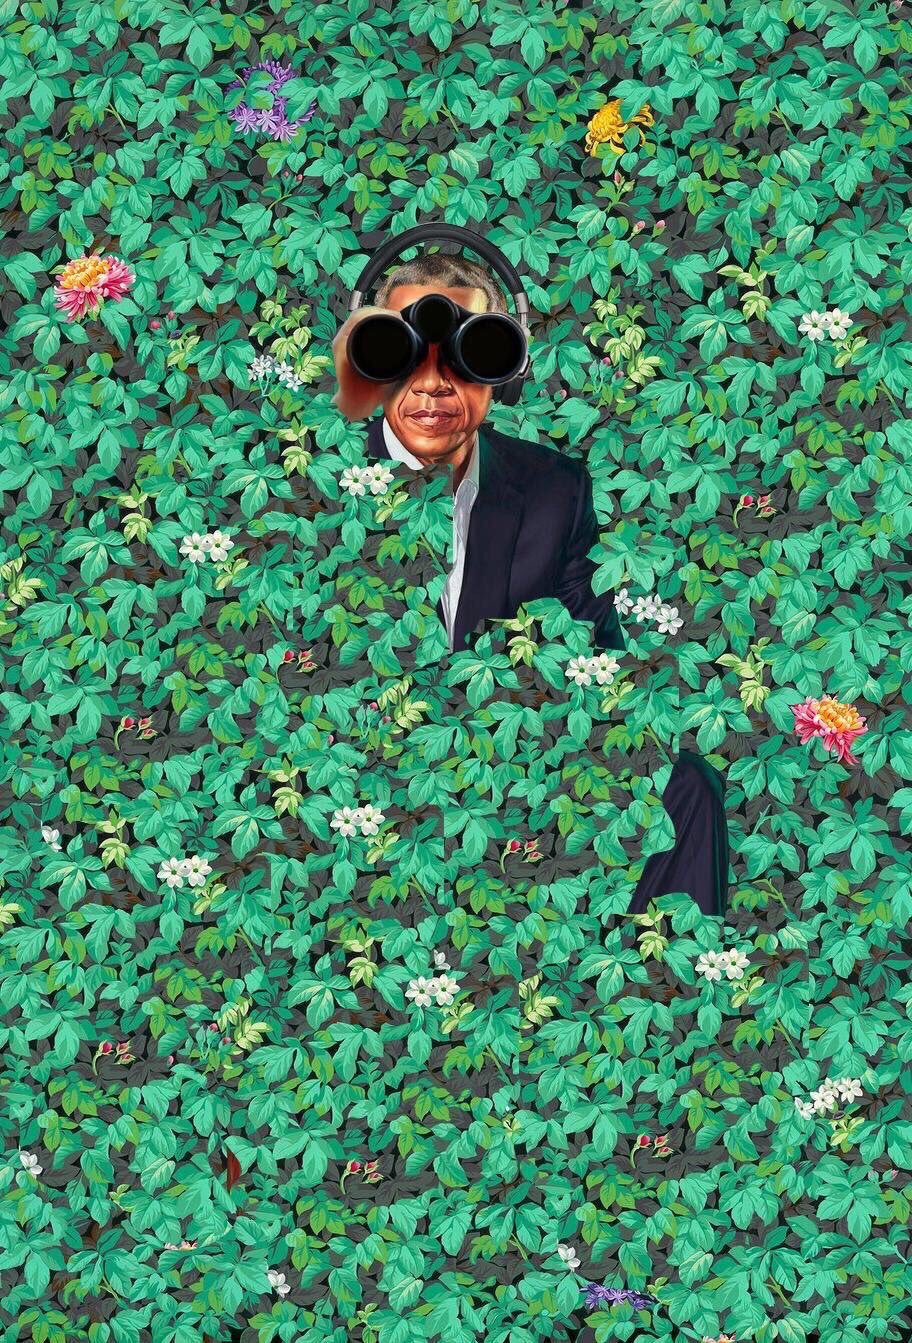 Obama+spying+on+the+public+hidden+from+the+bushes.+Photo+Credit%3A+Twitter